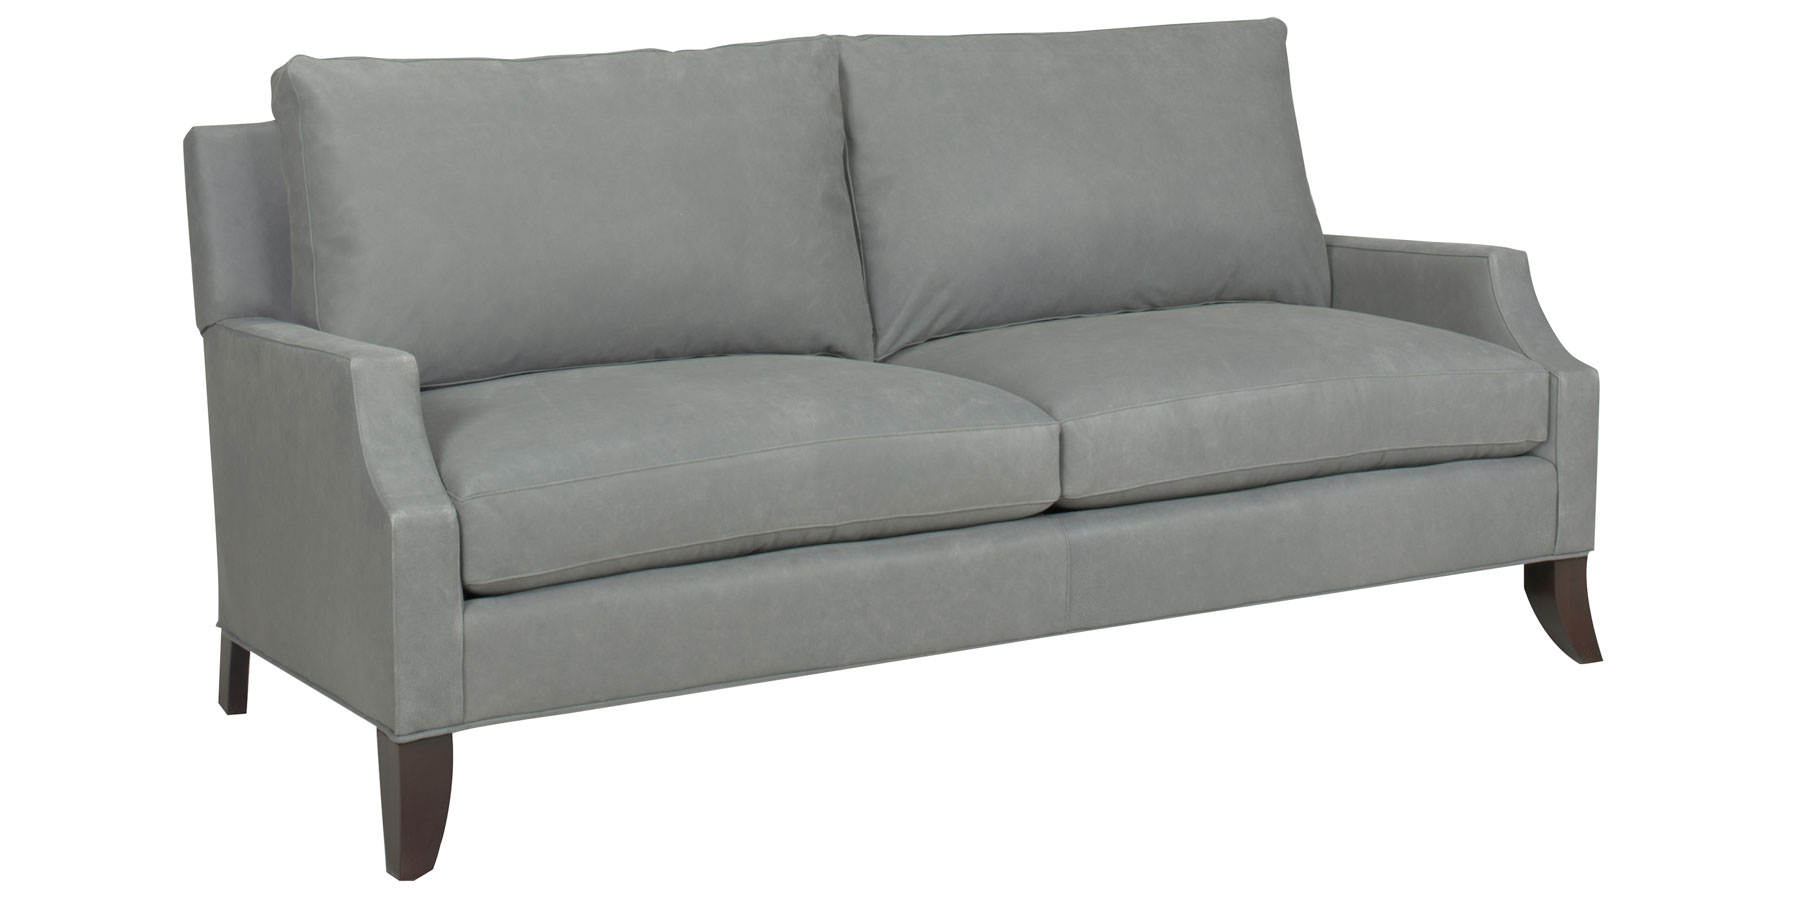 Apartment Sofa Sleeper Size Sectional Tricks Sofas For Small Within Apartment Sofa Sectional (View 12 of 12)